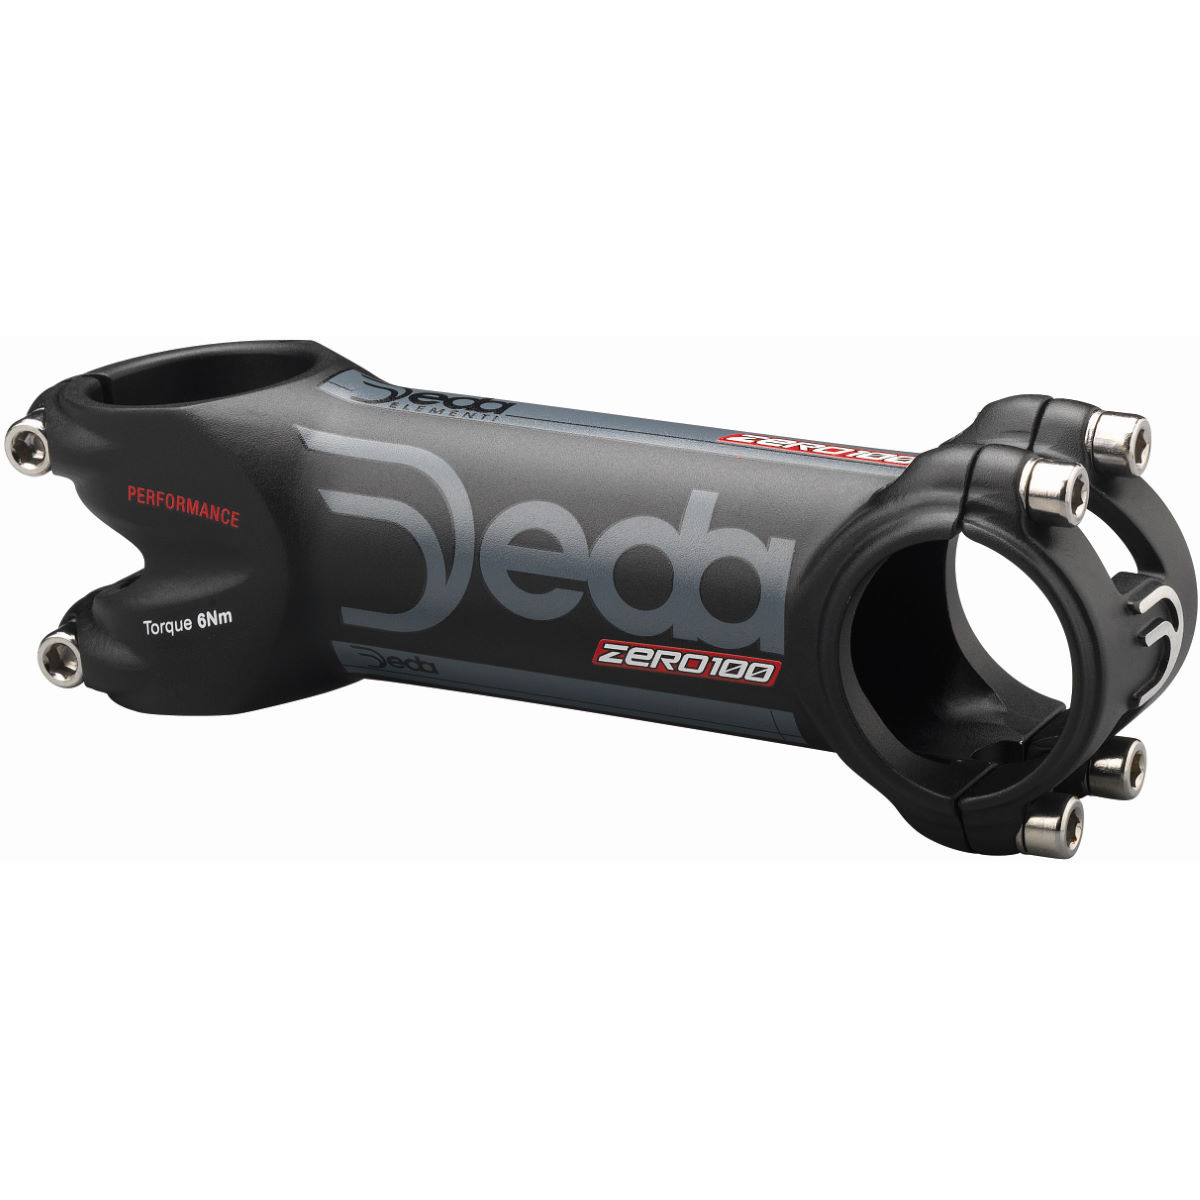 Potence Deda Zero 100 Performance - 110mm 82 Degrees Black / Black